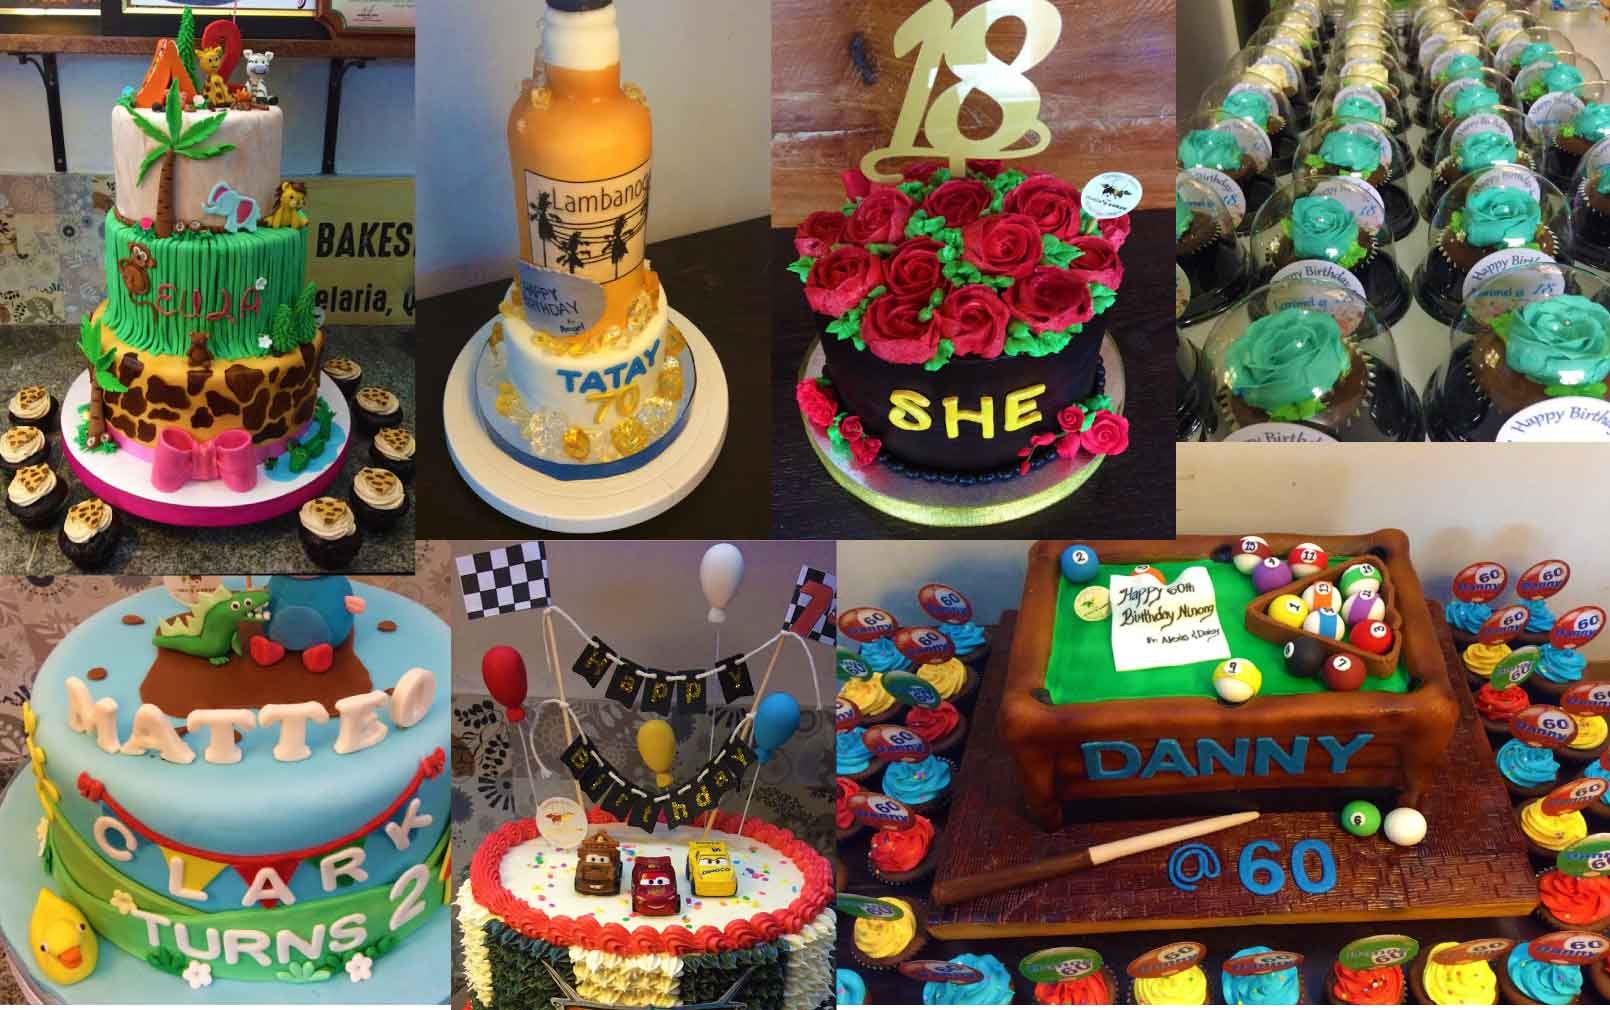 Assorted Customized Cakes by Maia's Cakes